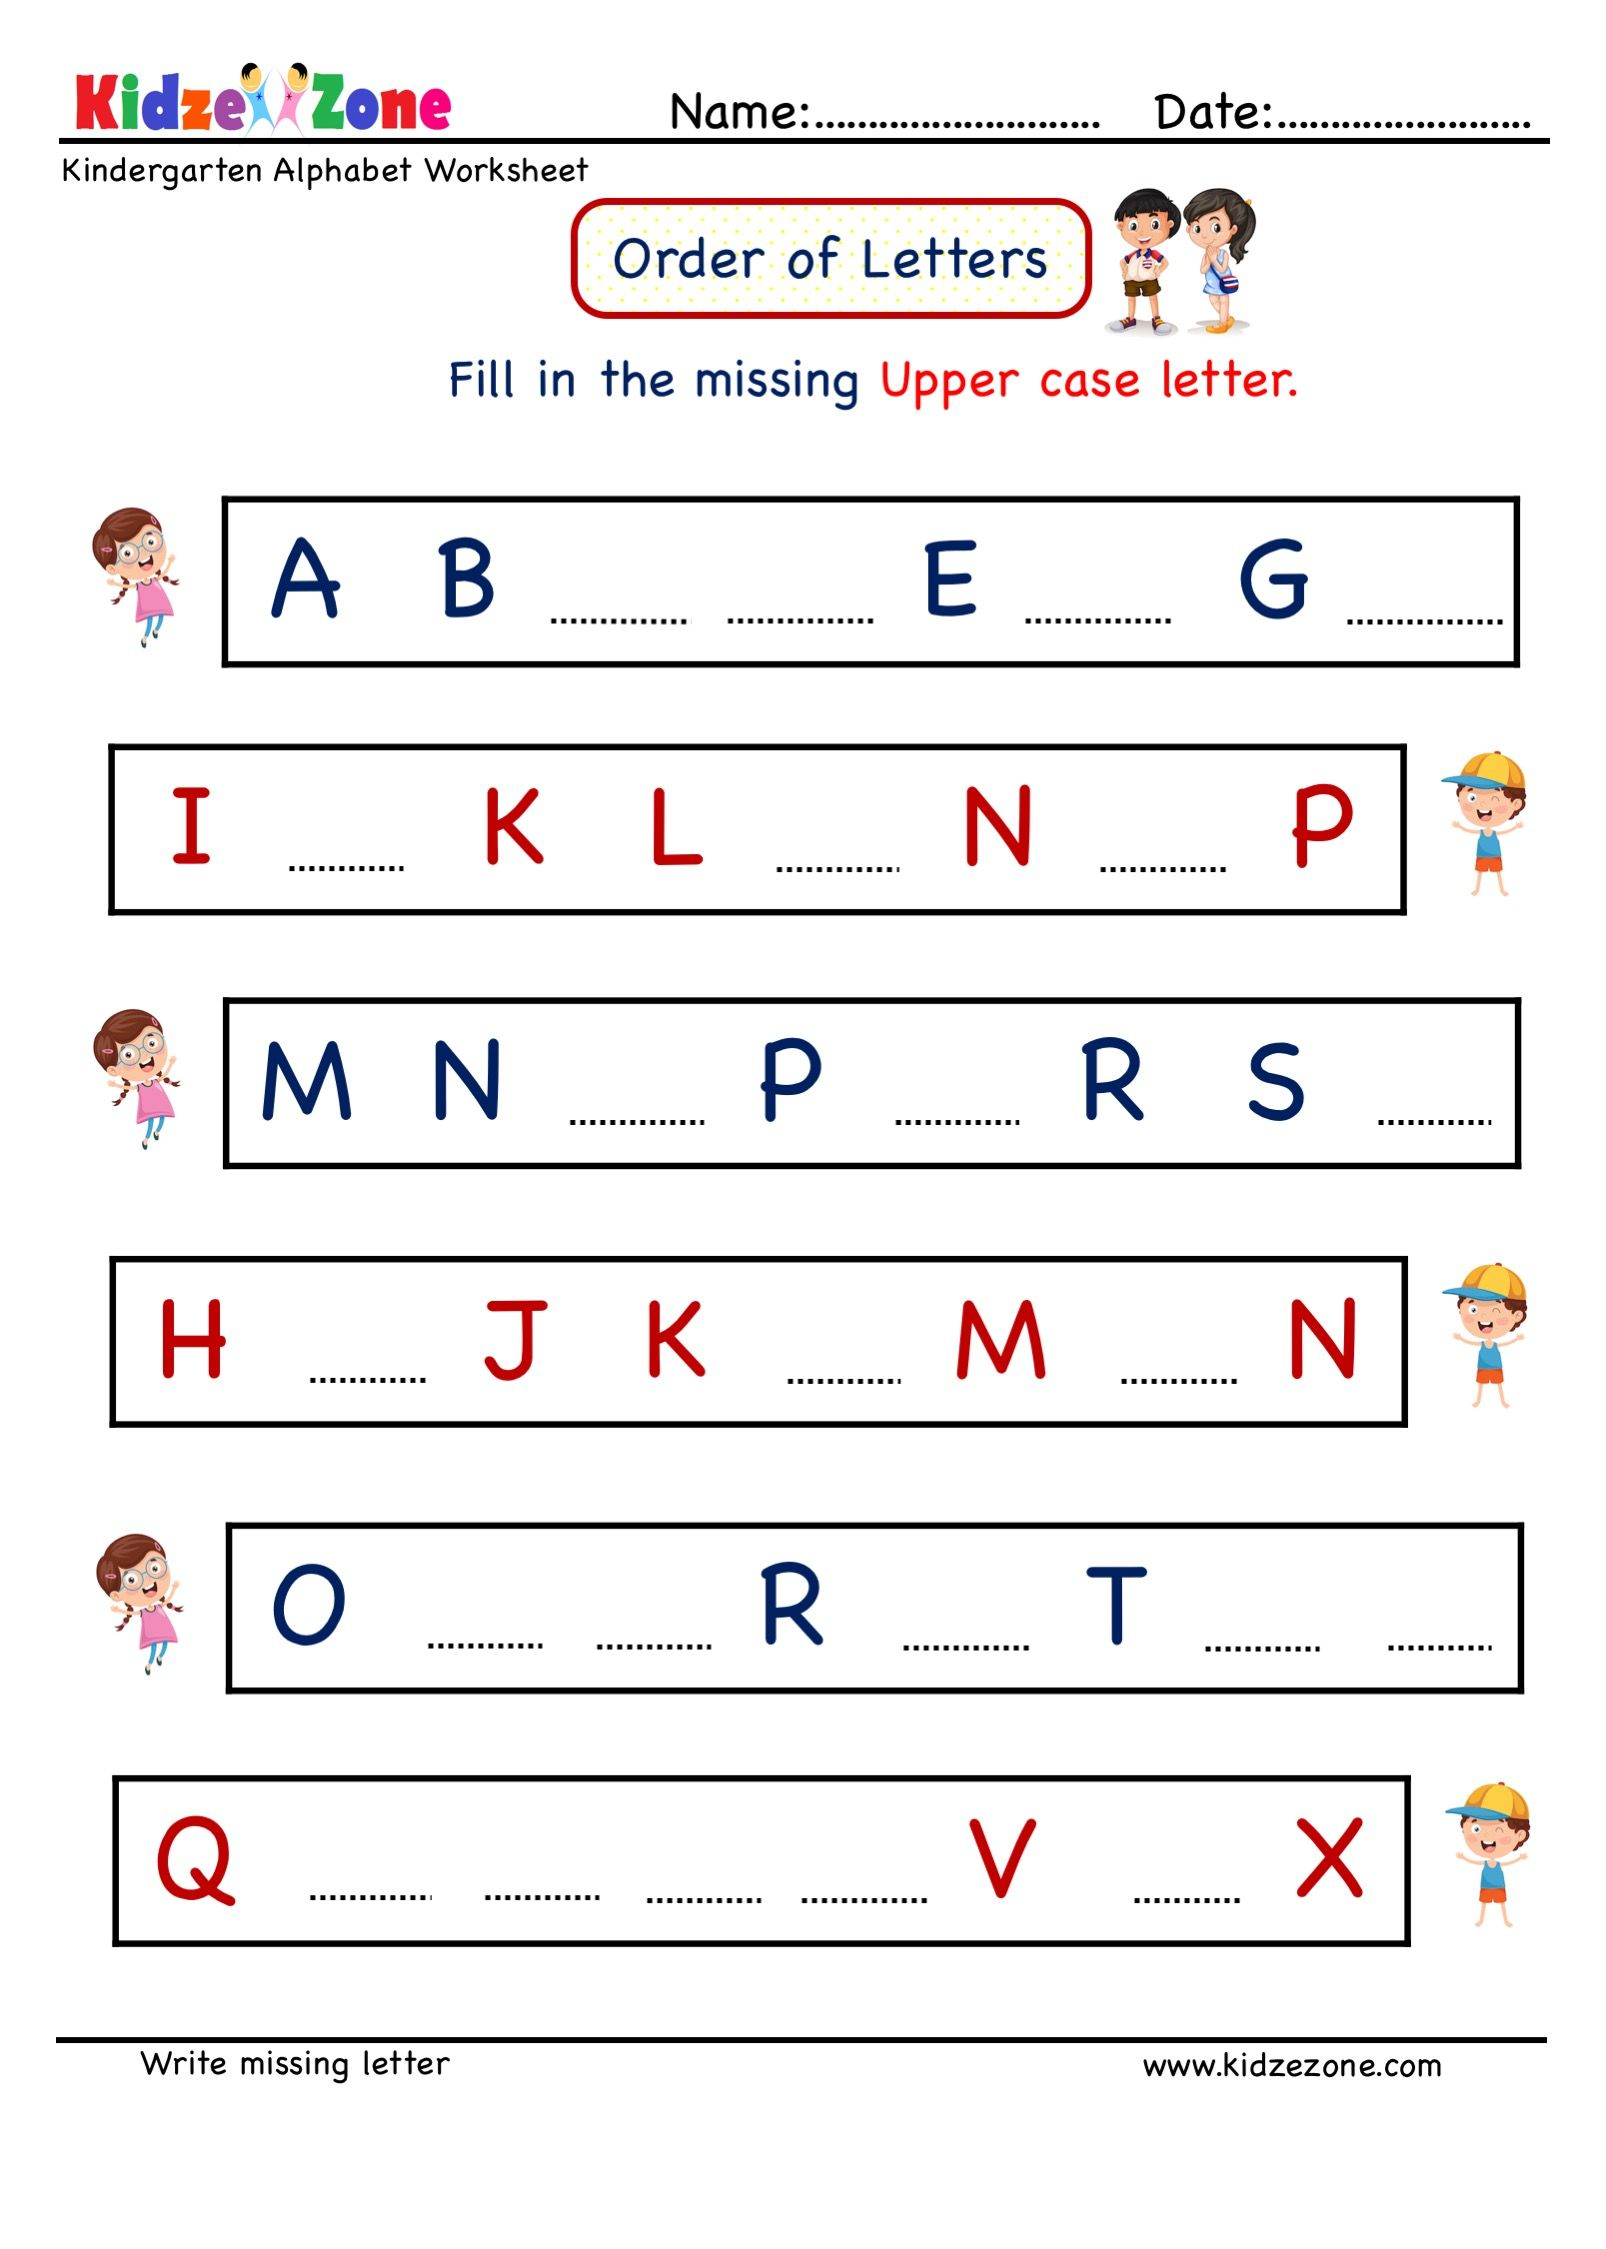 Fill Missing Upper Case Letter